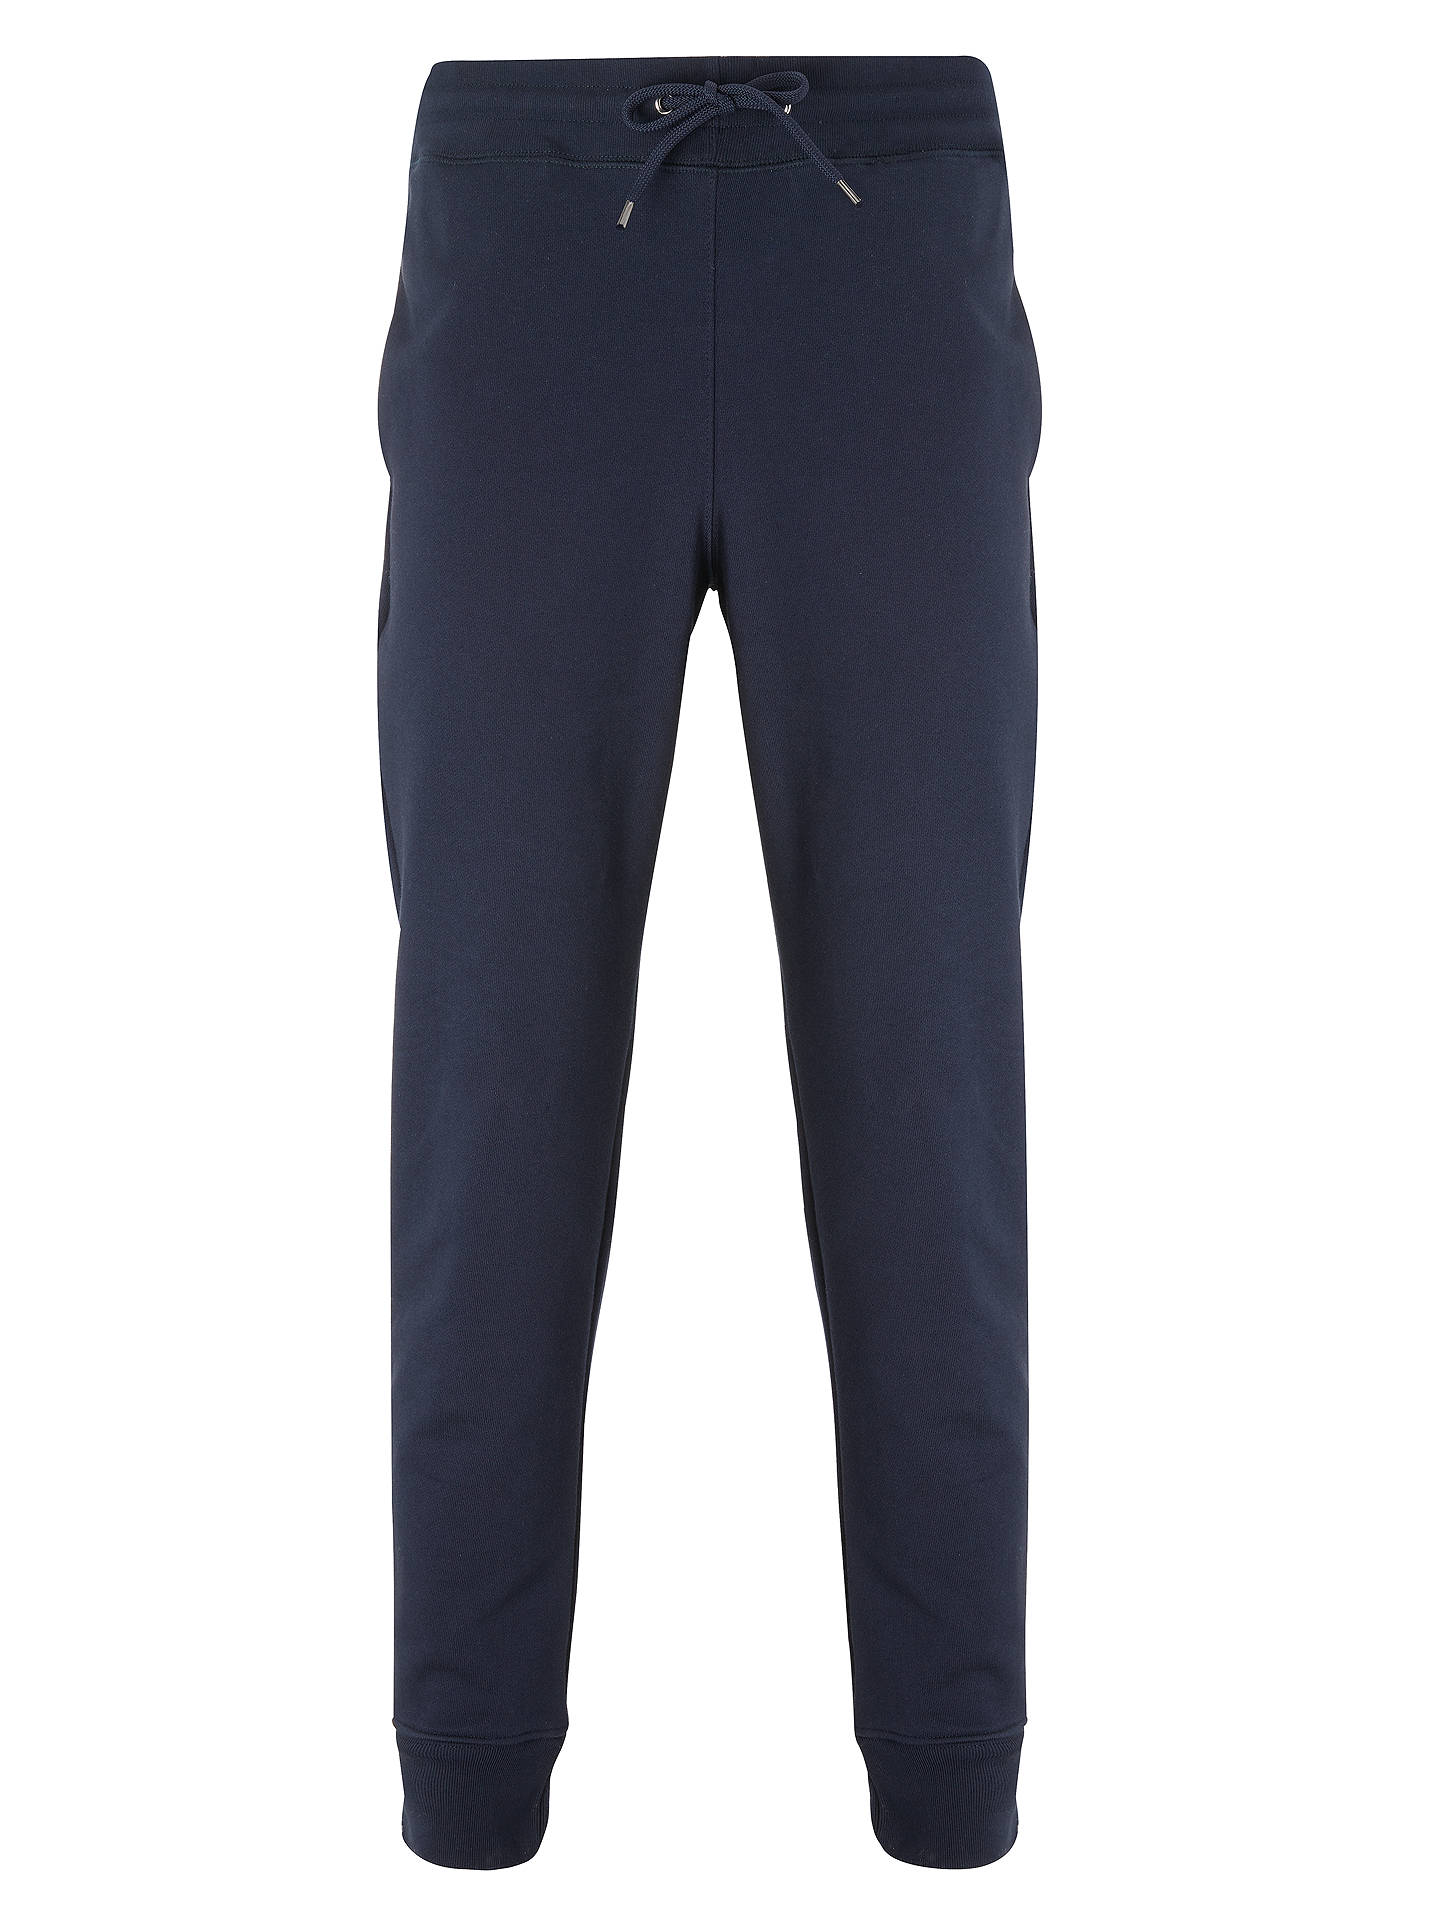 Buy PS Paul Smith Cotton Jersey Joggers, Navy, M Online at johnlewis.com